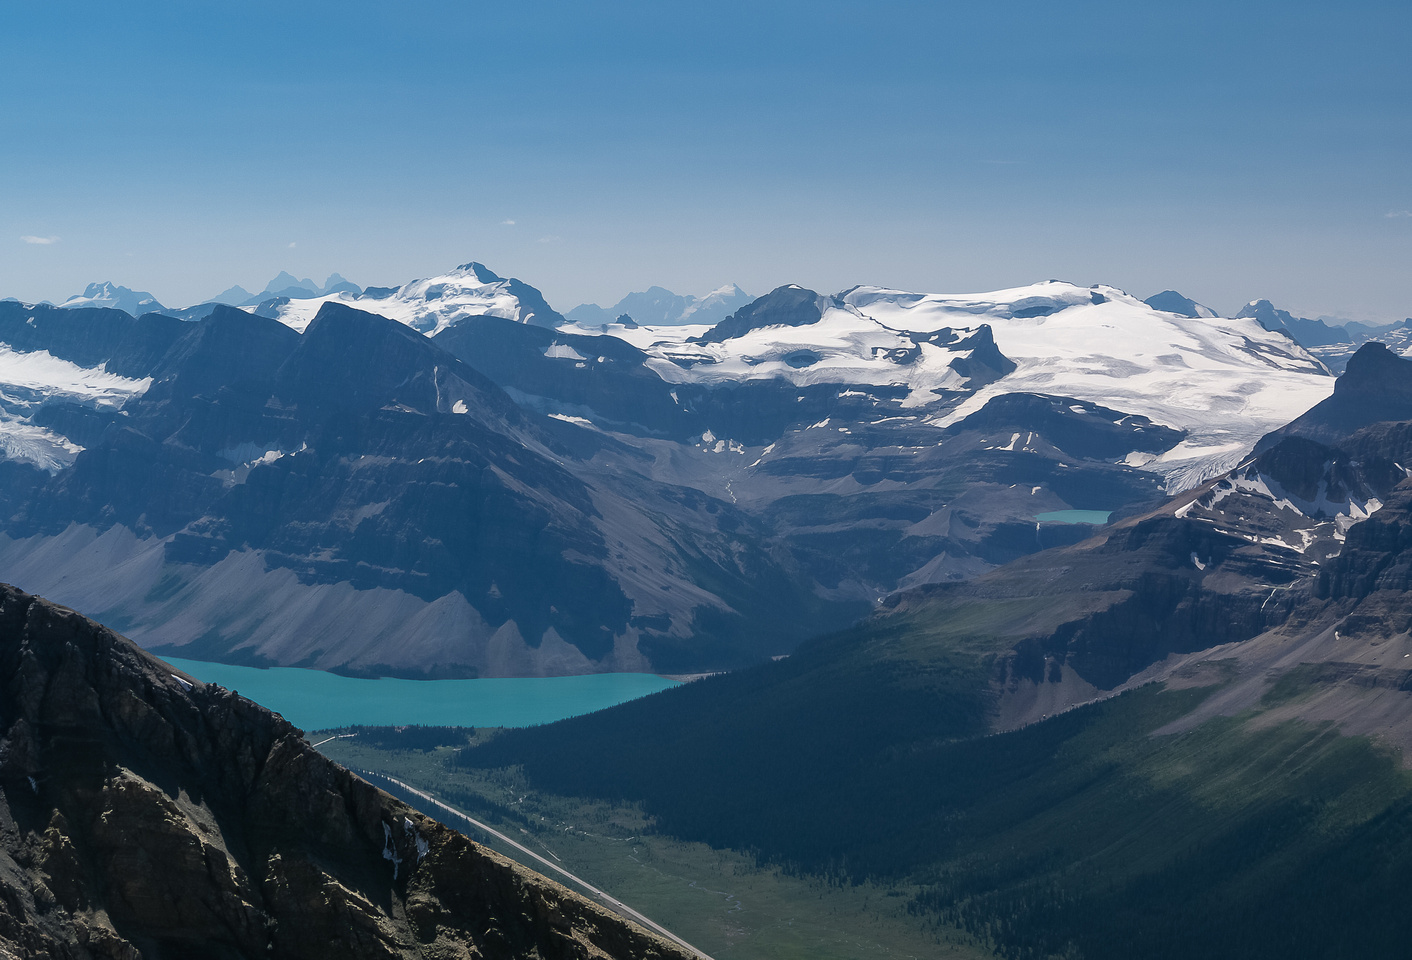 Looking over Bow Lake and Crowfoot and Vulture Mountains to the mighty Mount Balfour - highest peak of the Wapta Icefield.